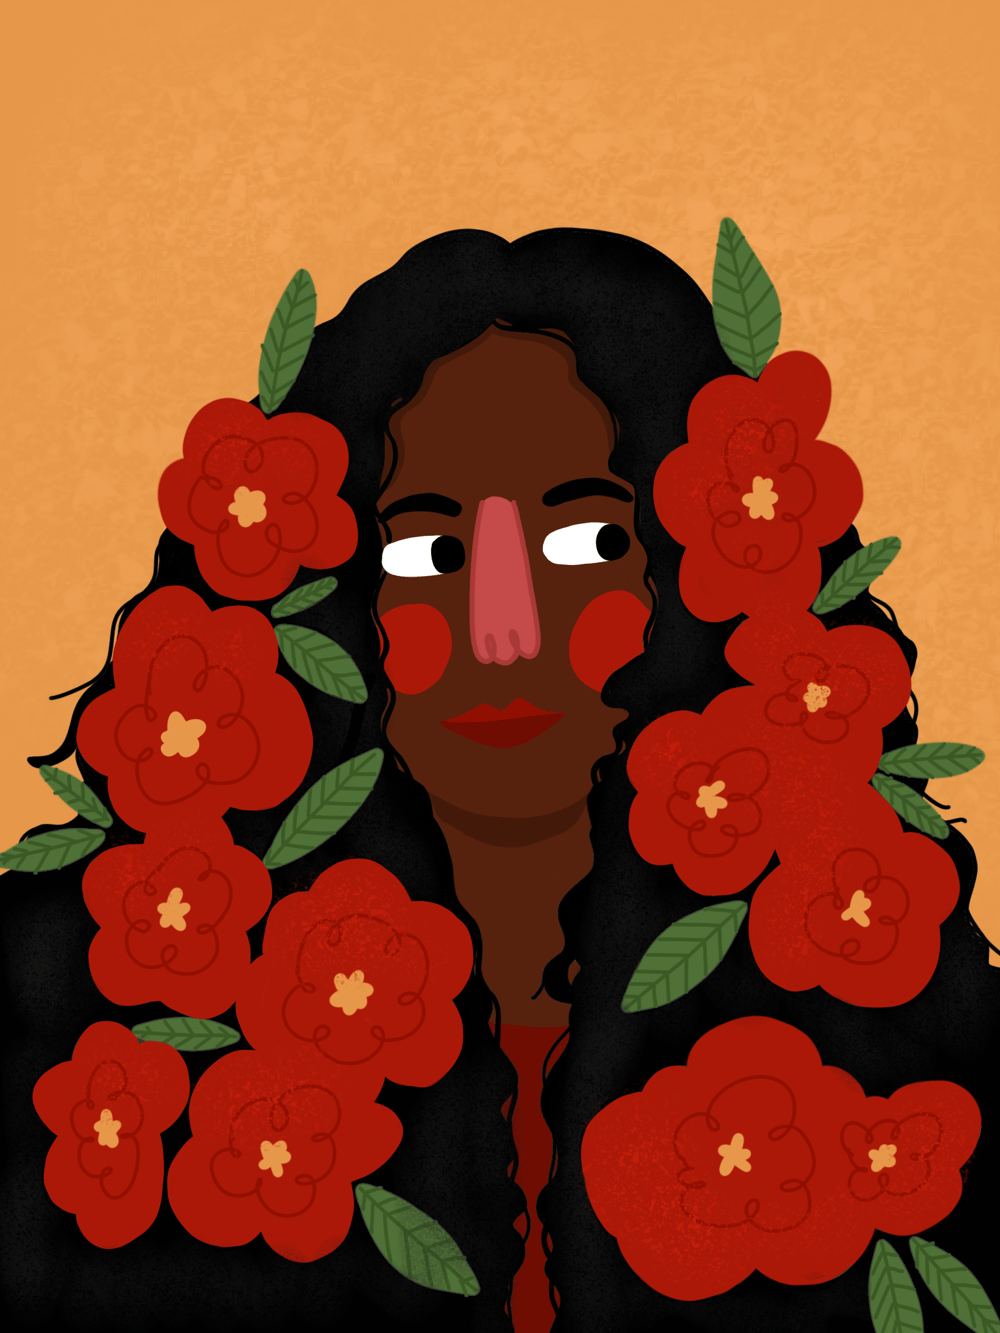 flowery flower girl! - image 1 - student project